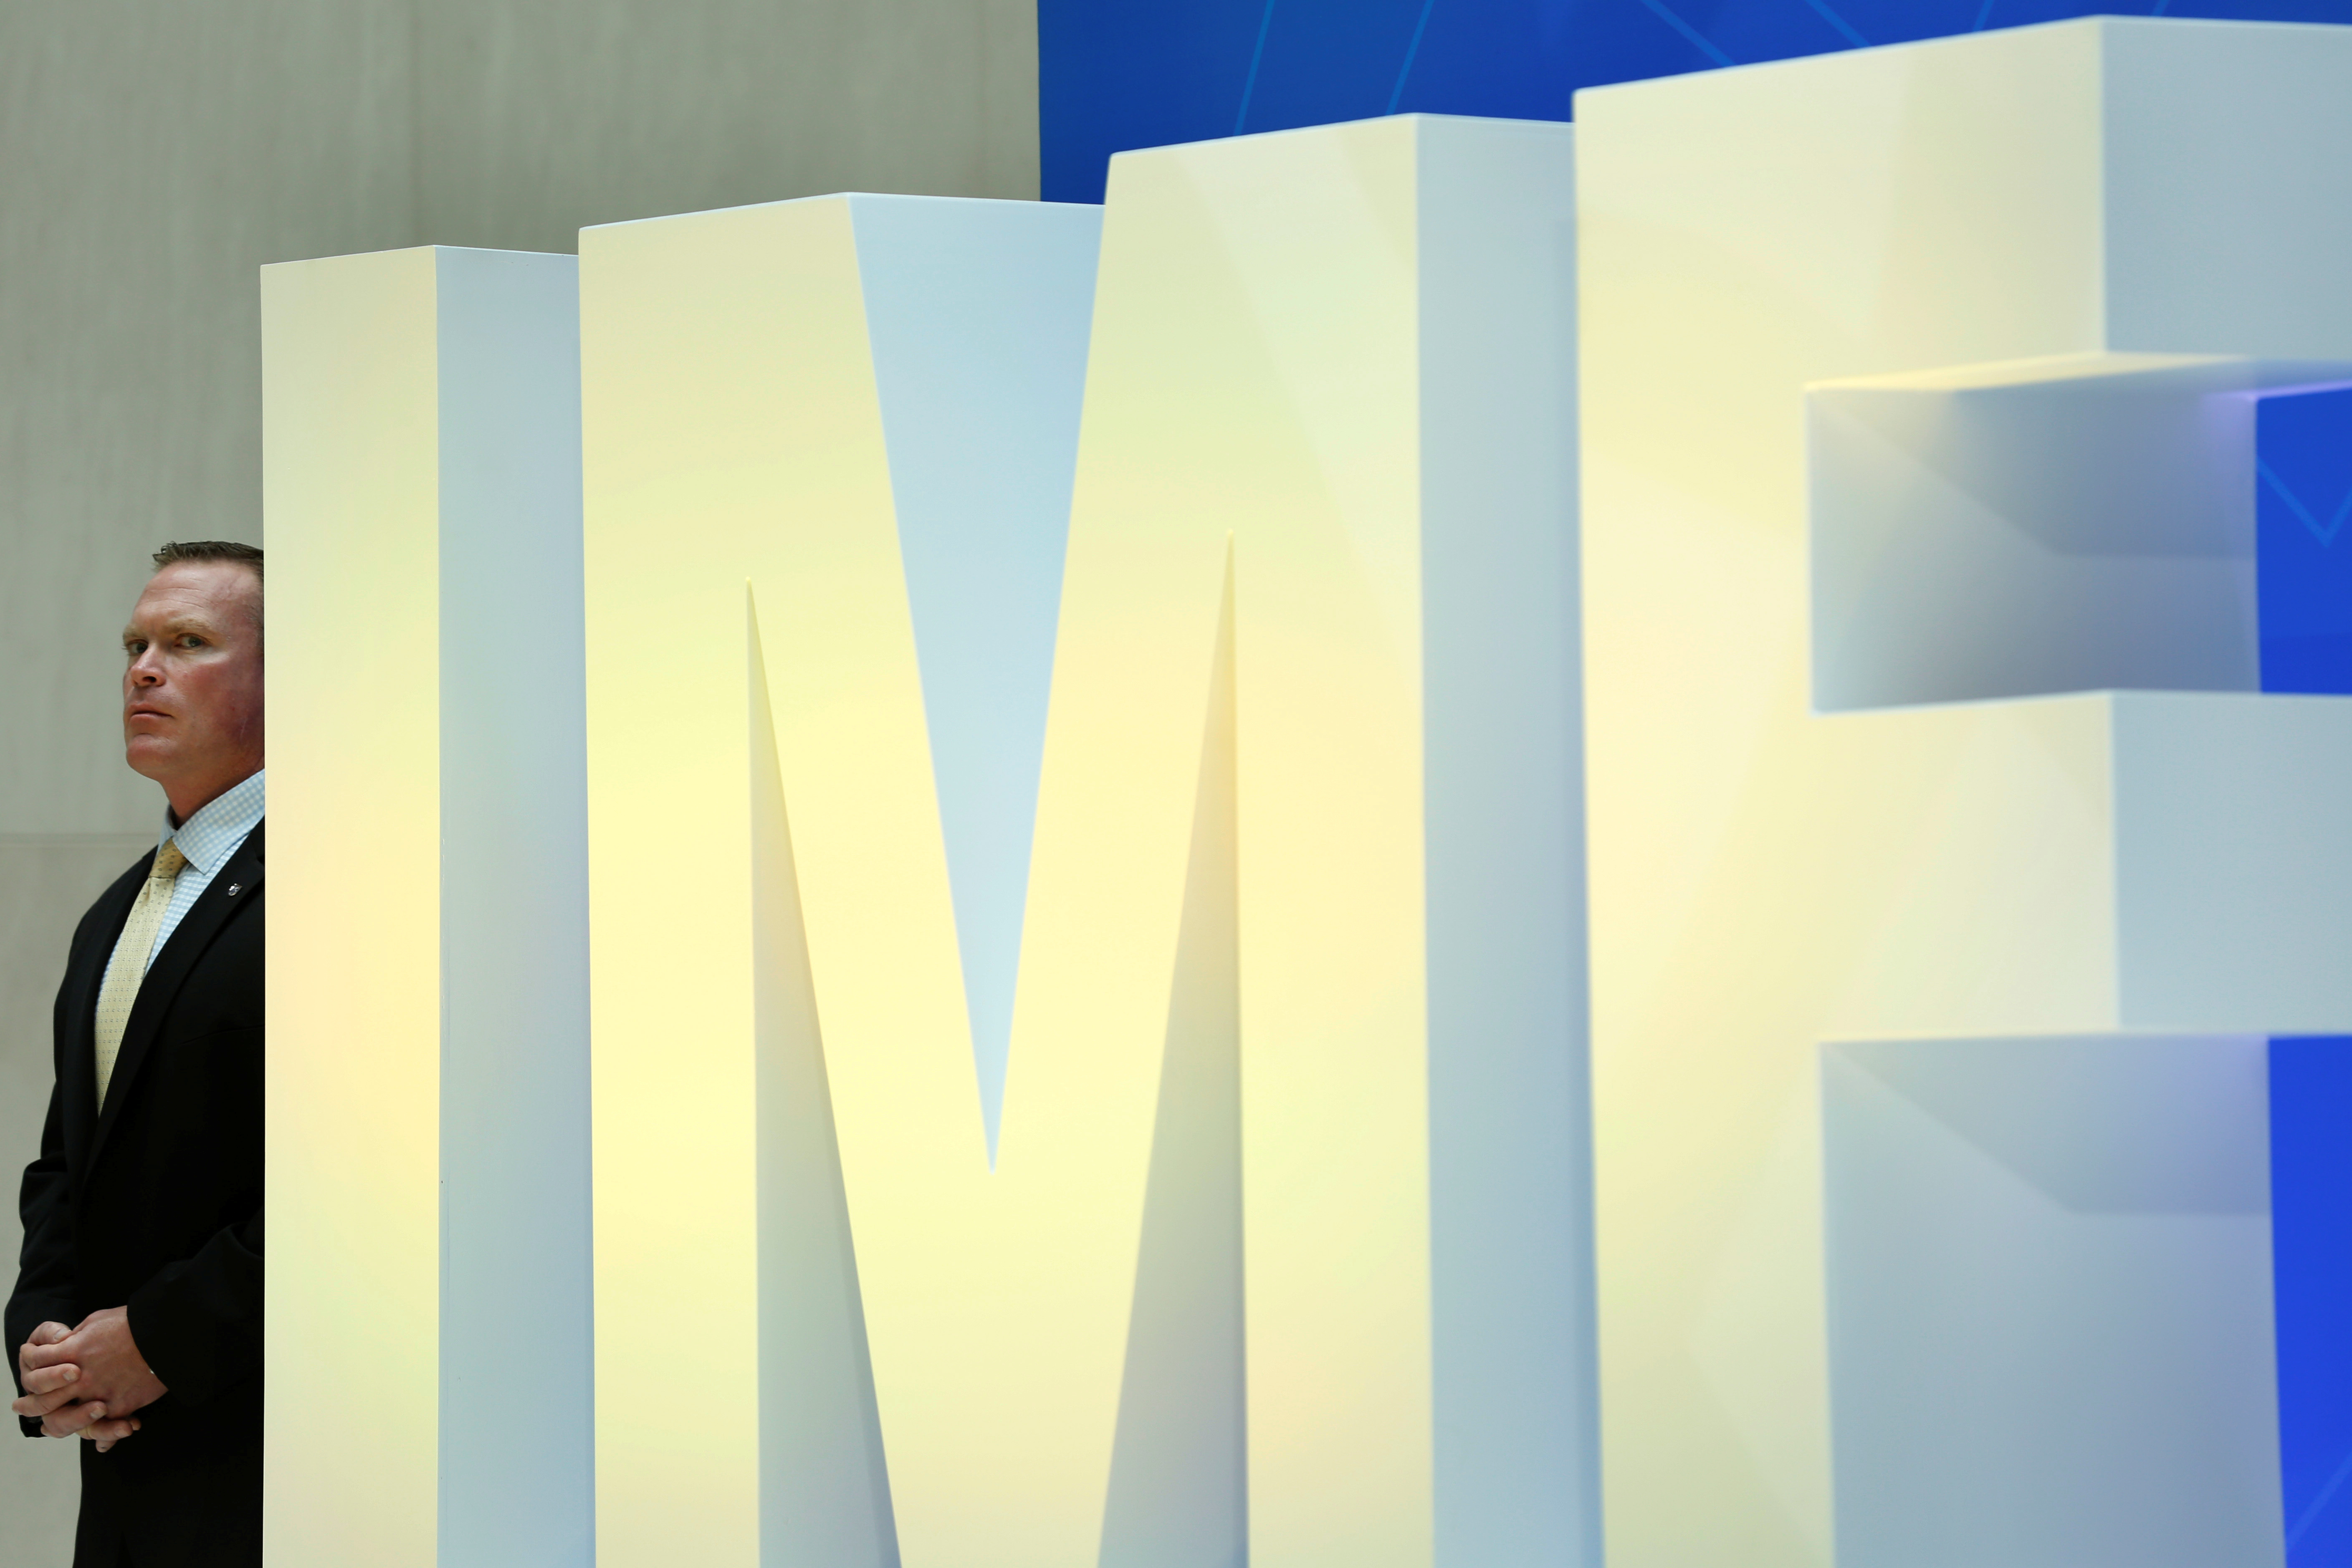 A security personnel stands next to International Monetary Fund logo at IMF headquarters in Washington, U.S., April 19, 2017. REUTERS/Yuri Gripas